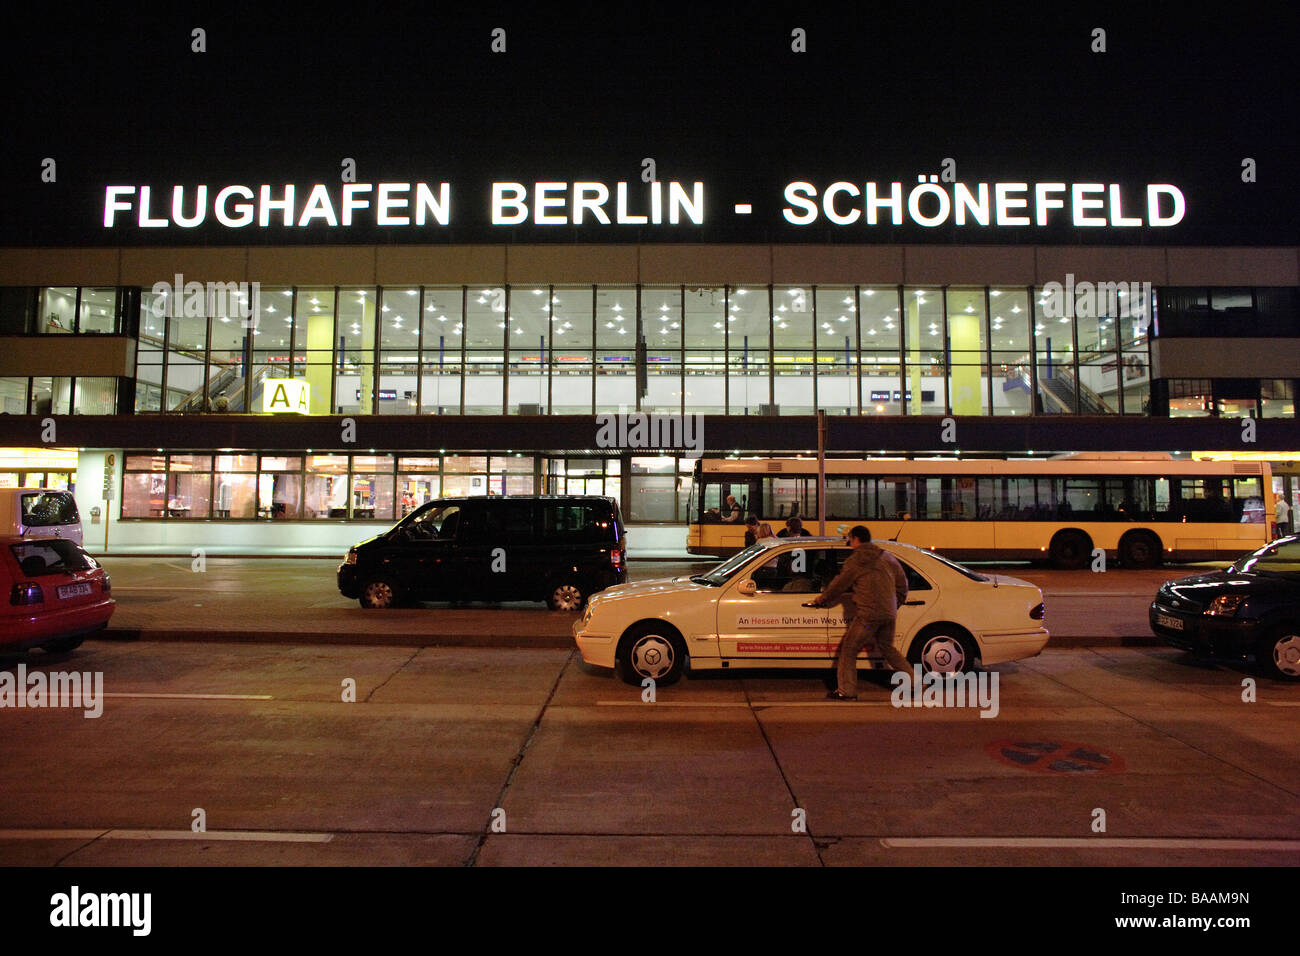 Berlin Schönefeld Park And Ride Airport Bus Night Stock Photos Airport Bus Night Stock